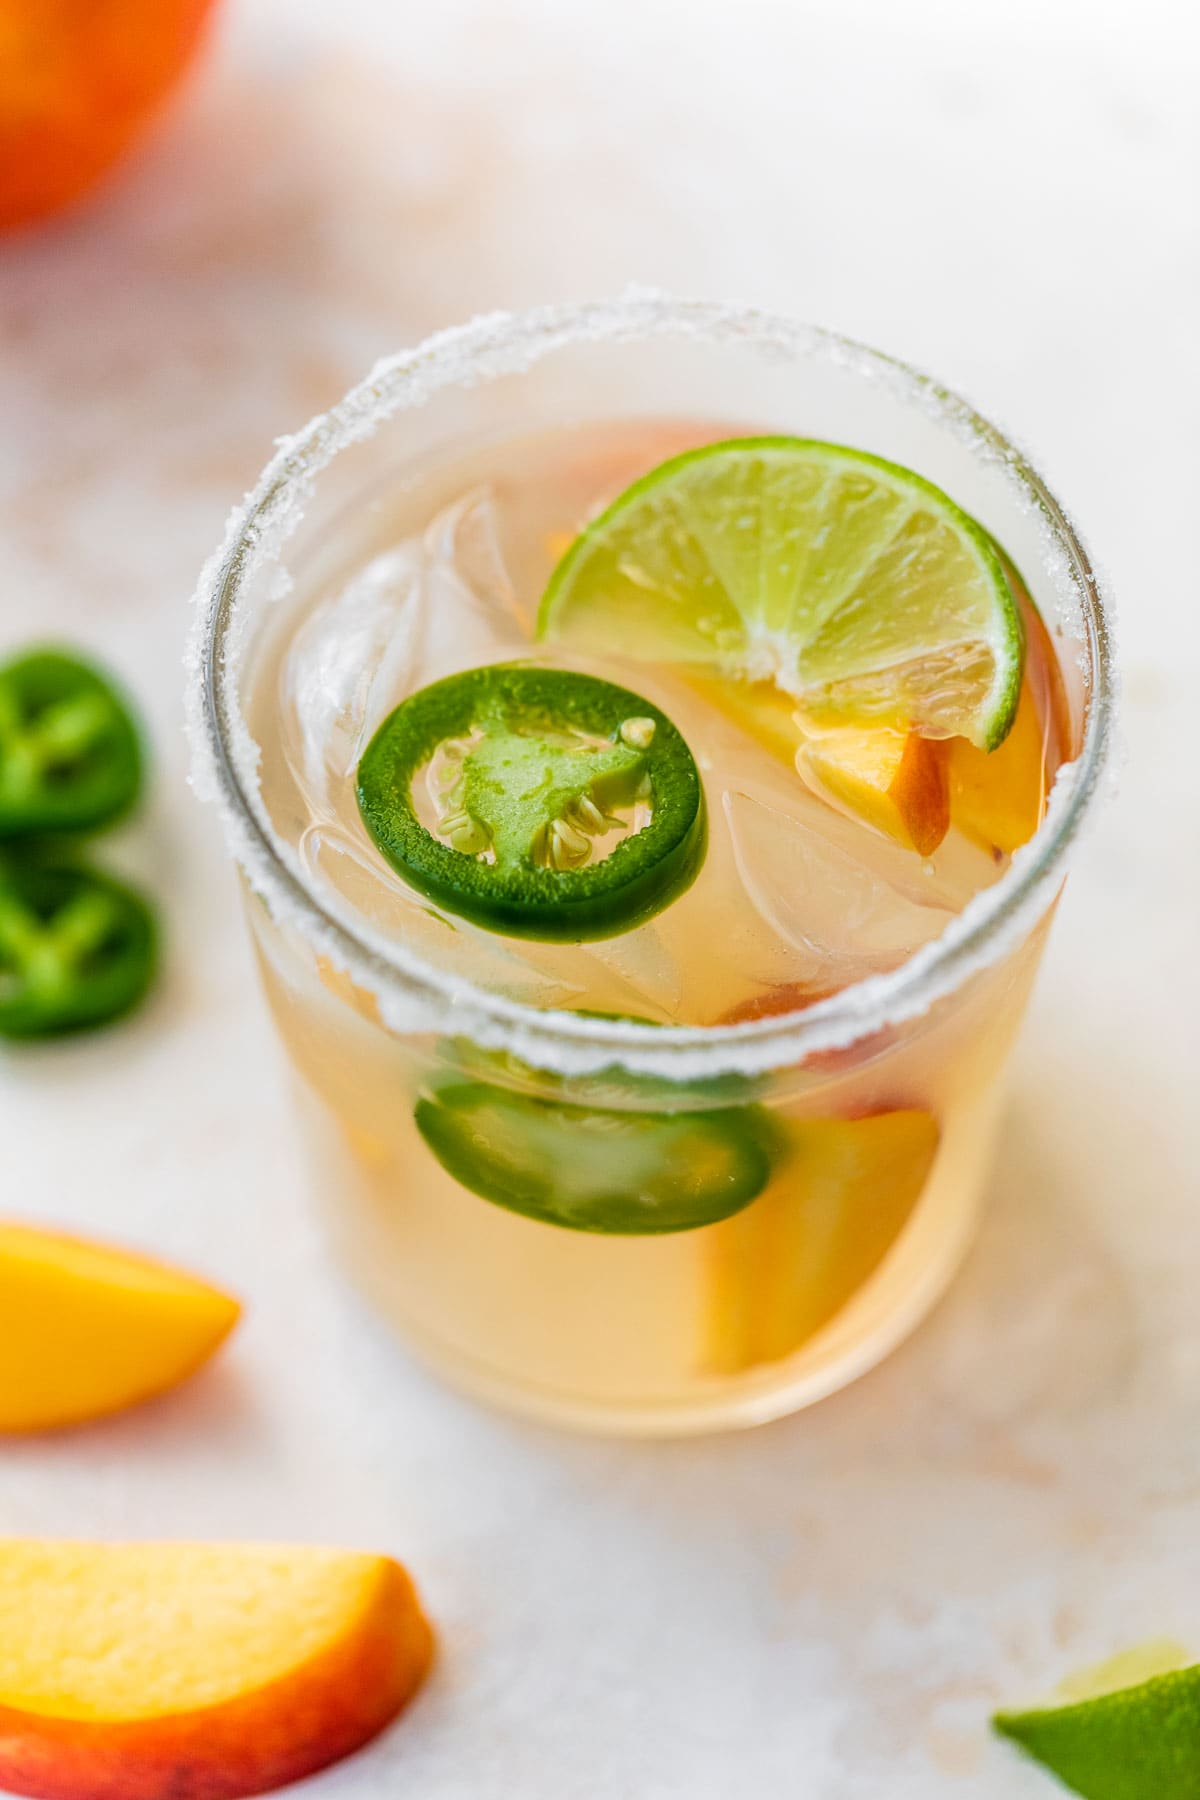 Peach Jalapeno Margaritas-Fresh peach margaritas with jalapeno simple syrup